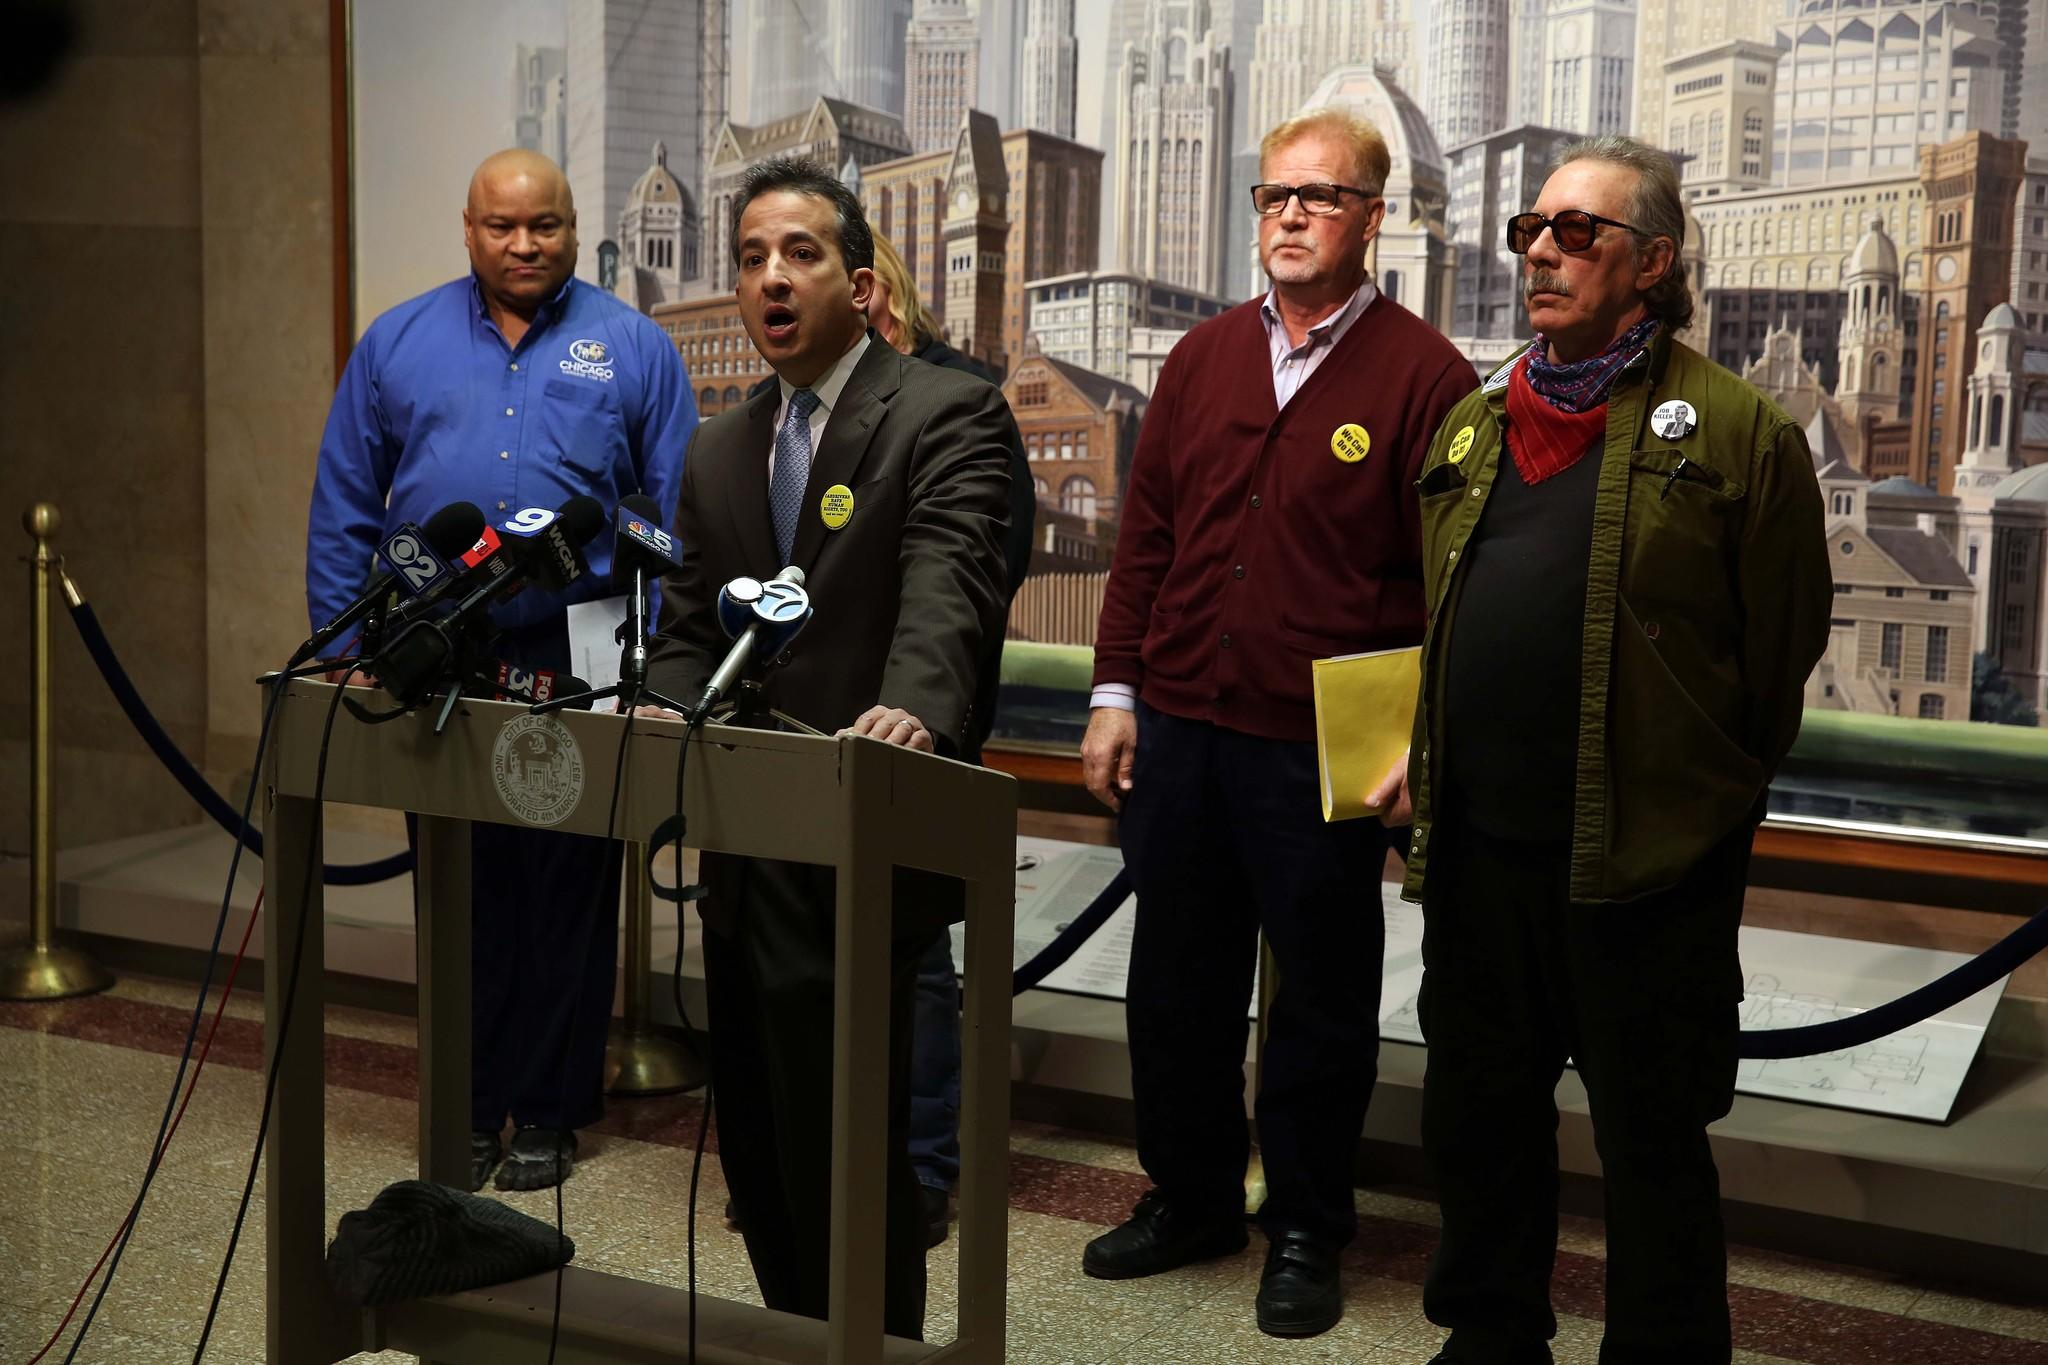 Attorney Jim Zouras, second from left, announces a lawsuit against Chicago's five major cab companies, alleging wage violations and misclassification of Chicago cab drivers as independent contractors.